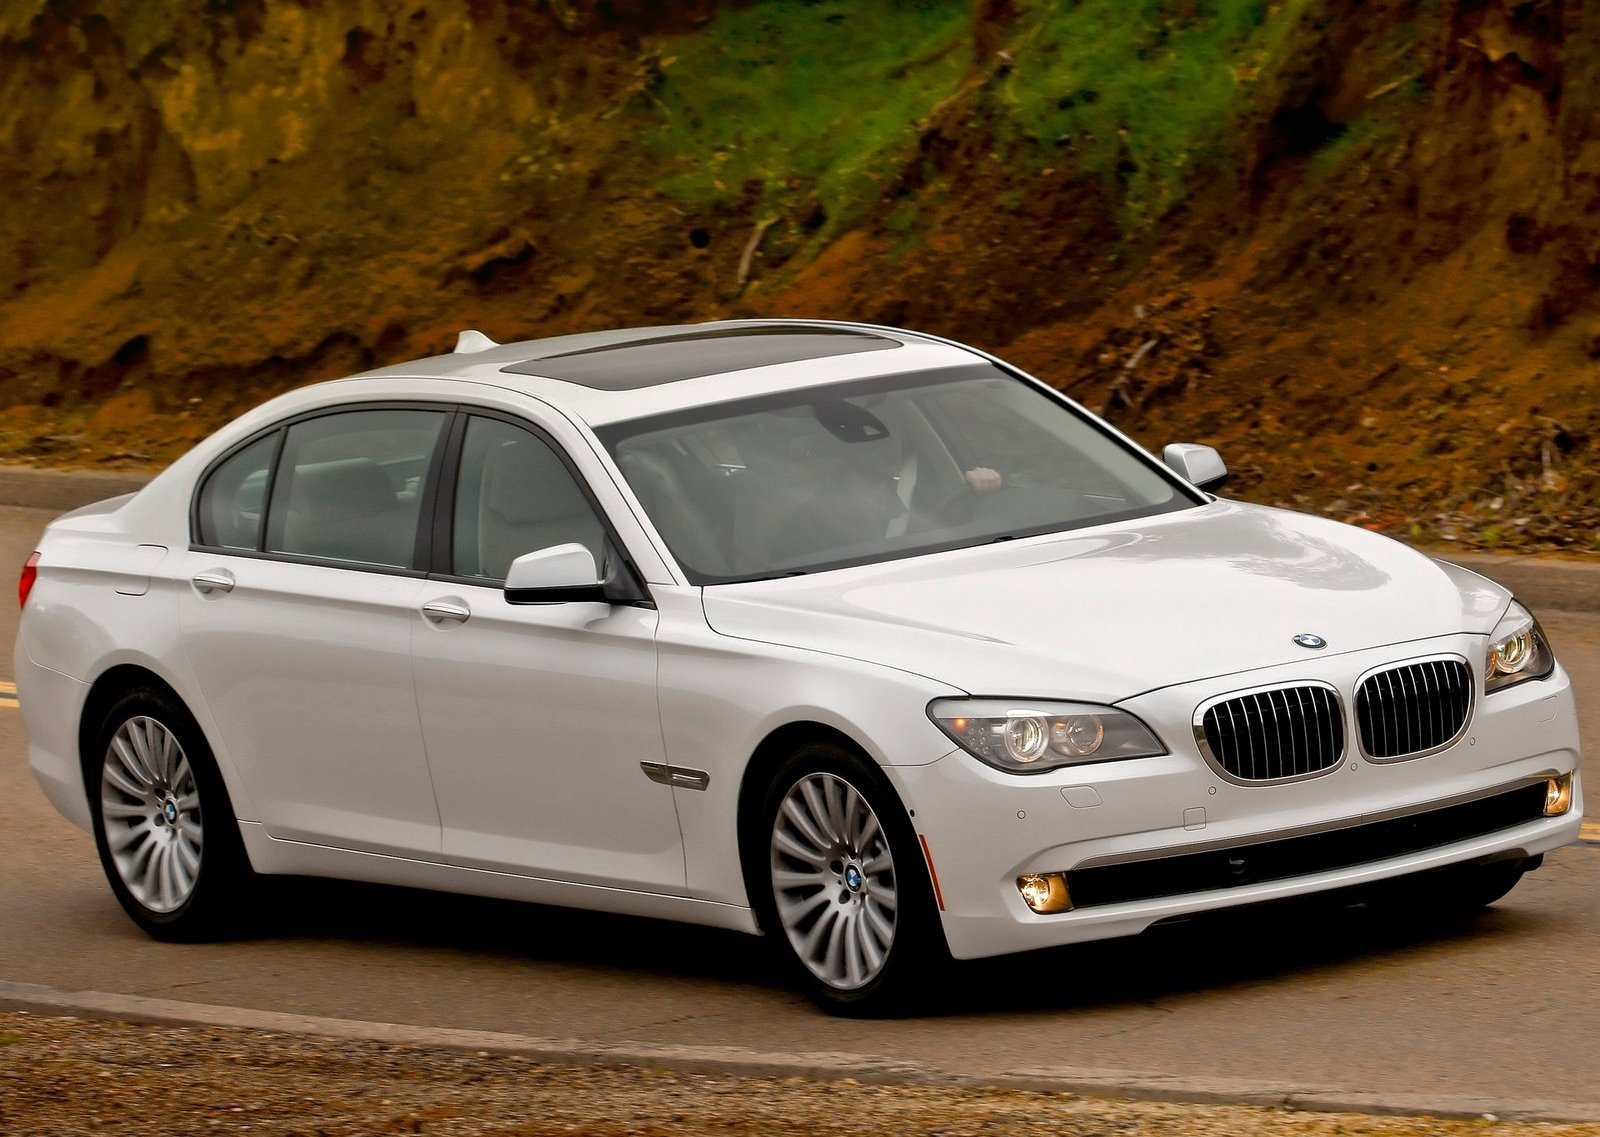 Bmw-7_series_f01_f02_mp2_pic_81166